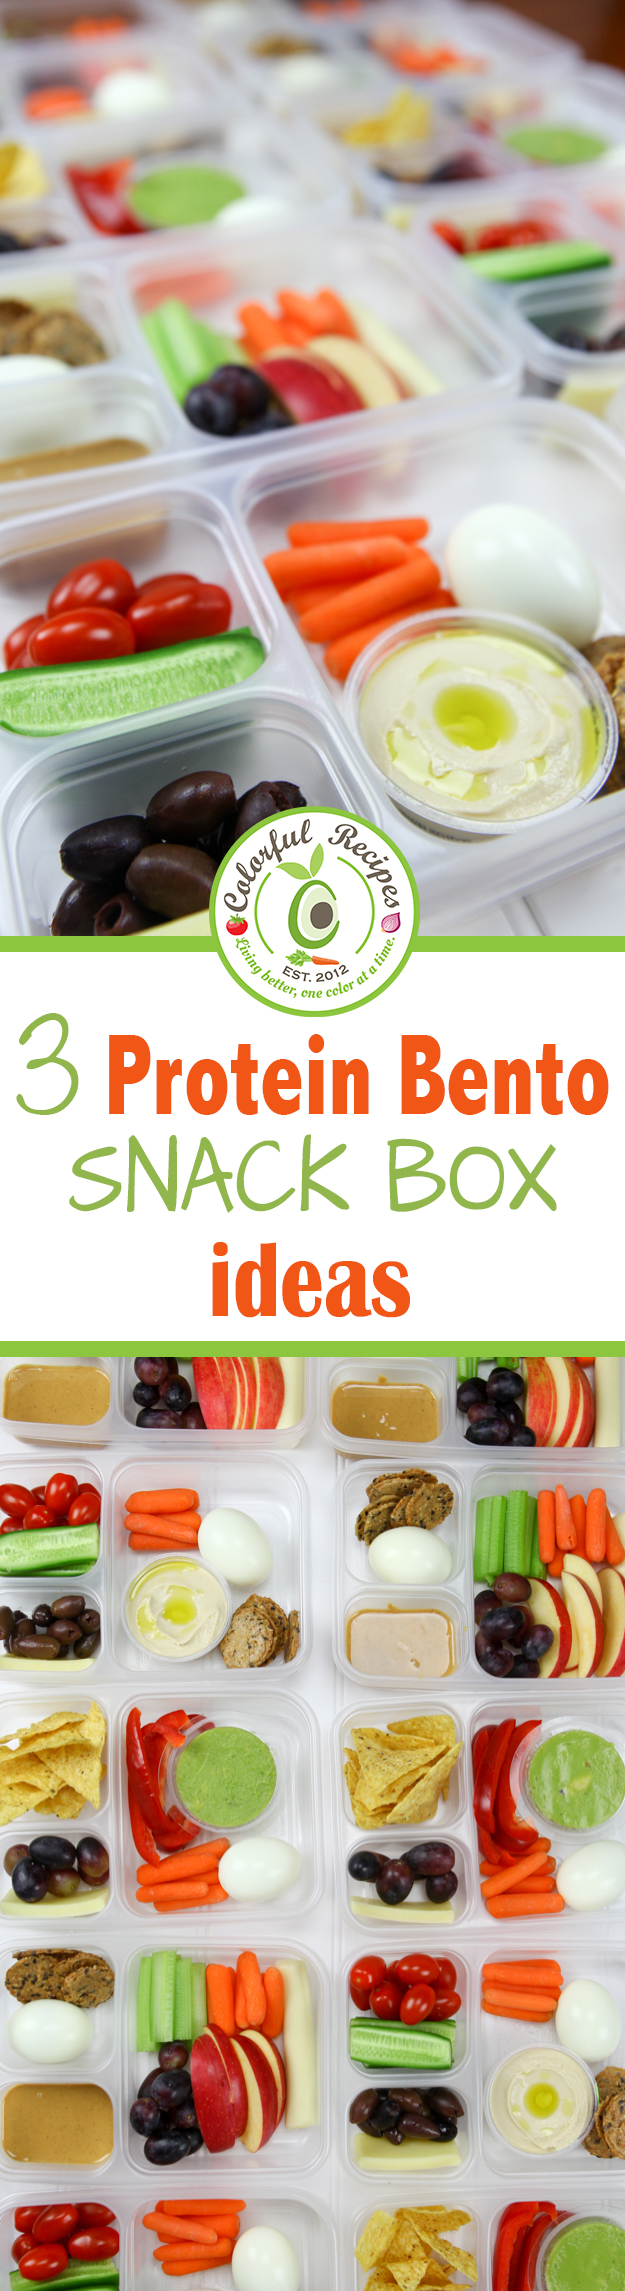 3 Protein Bento Snack Box Ideas